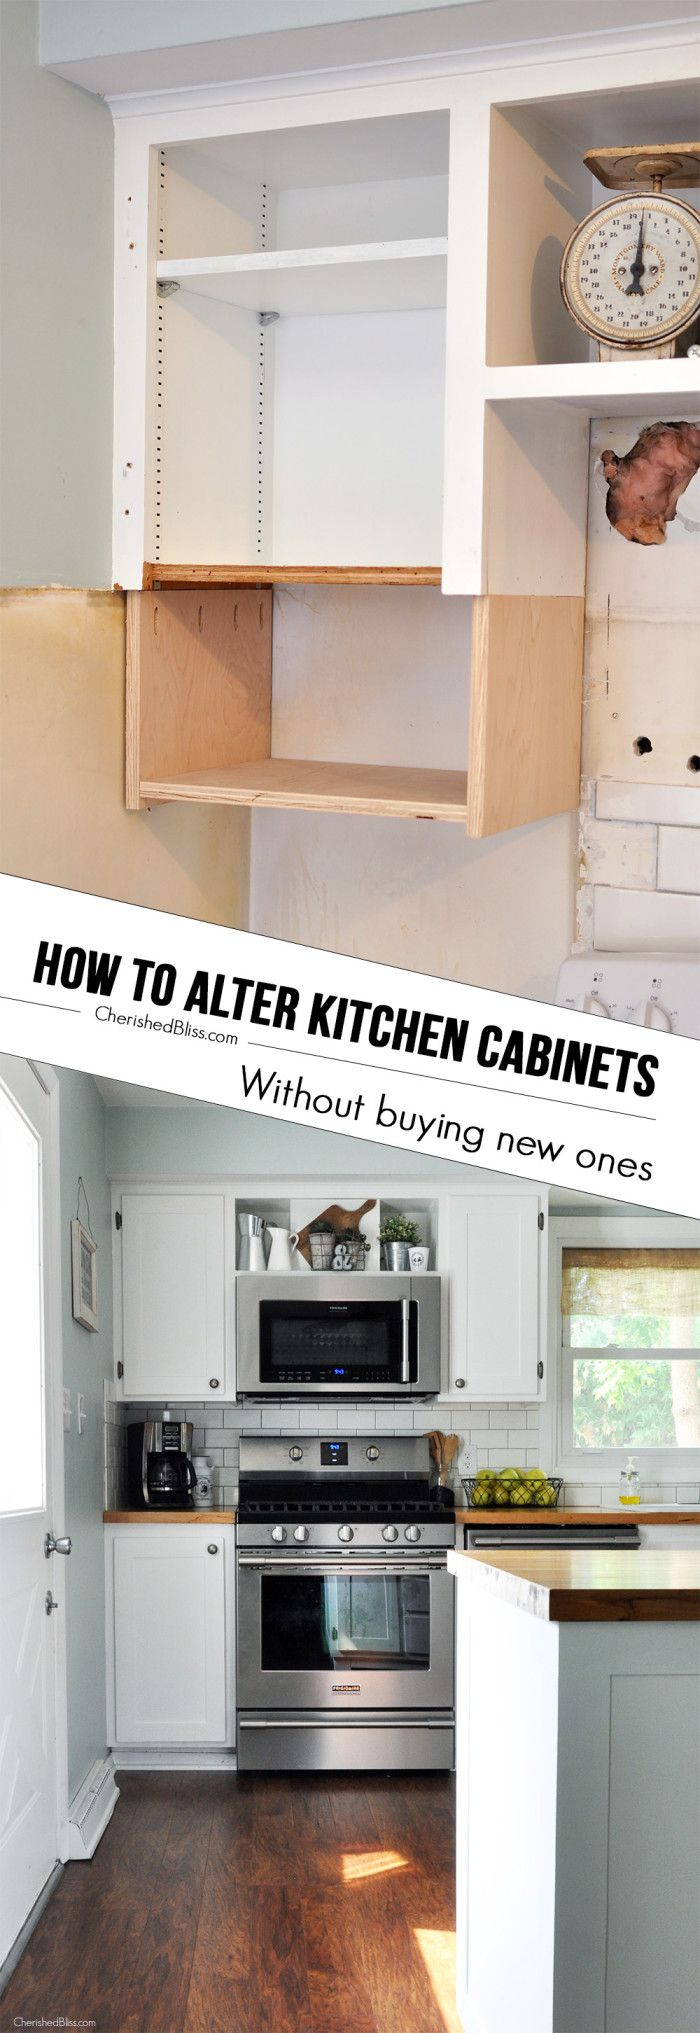 How To Alter Kitchen Cabinets Cabinets Get The Look And